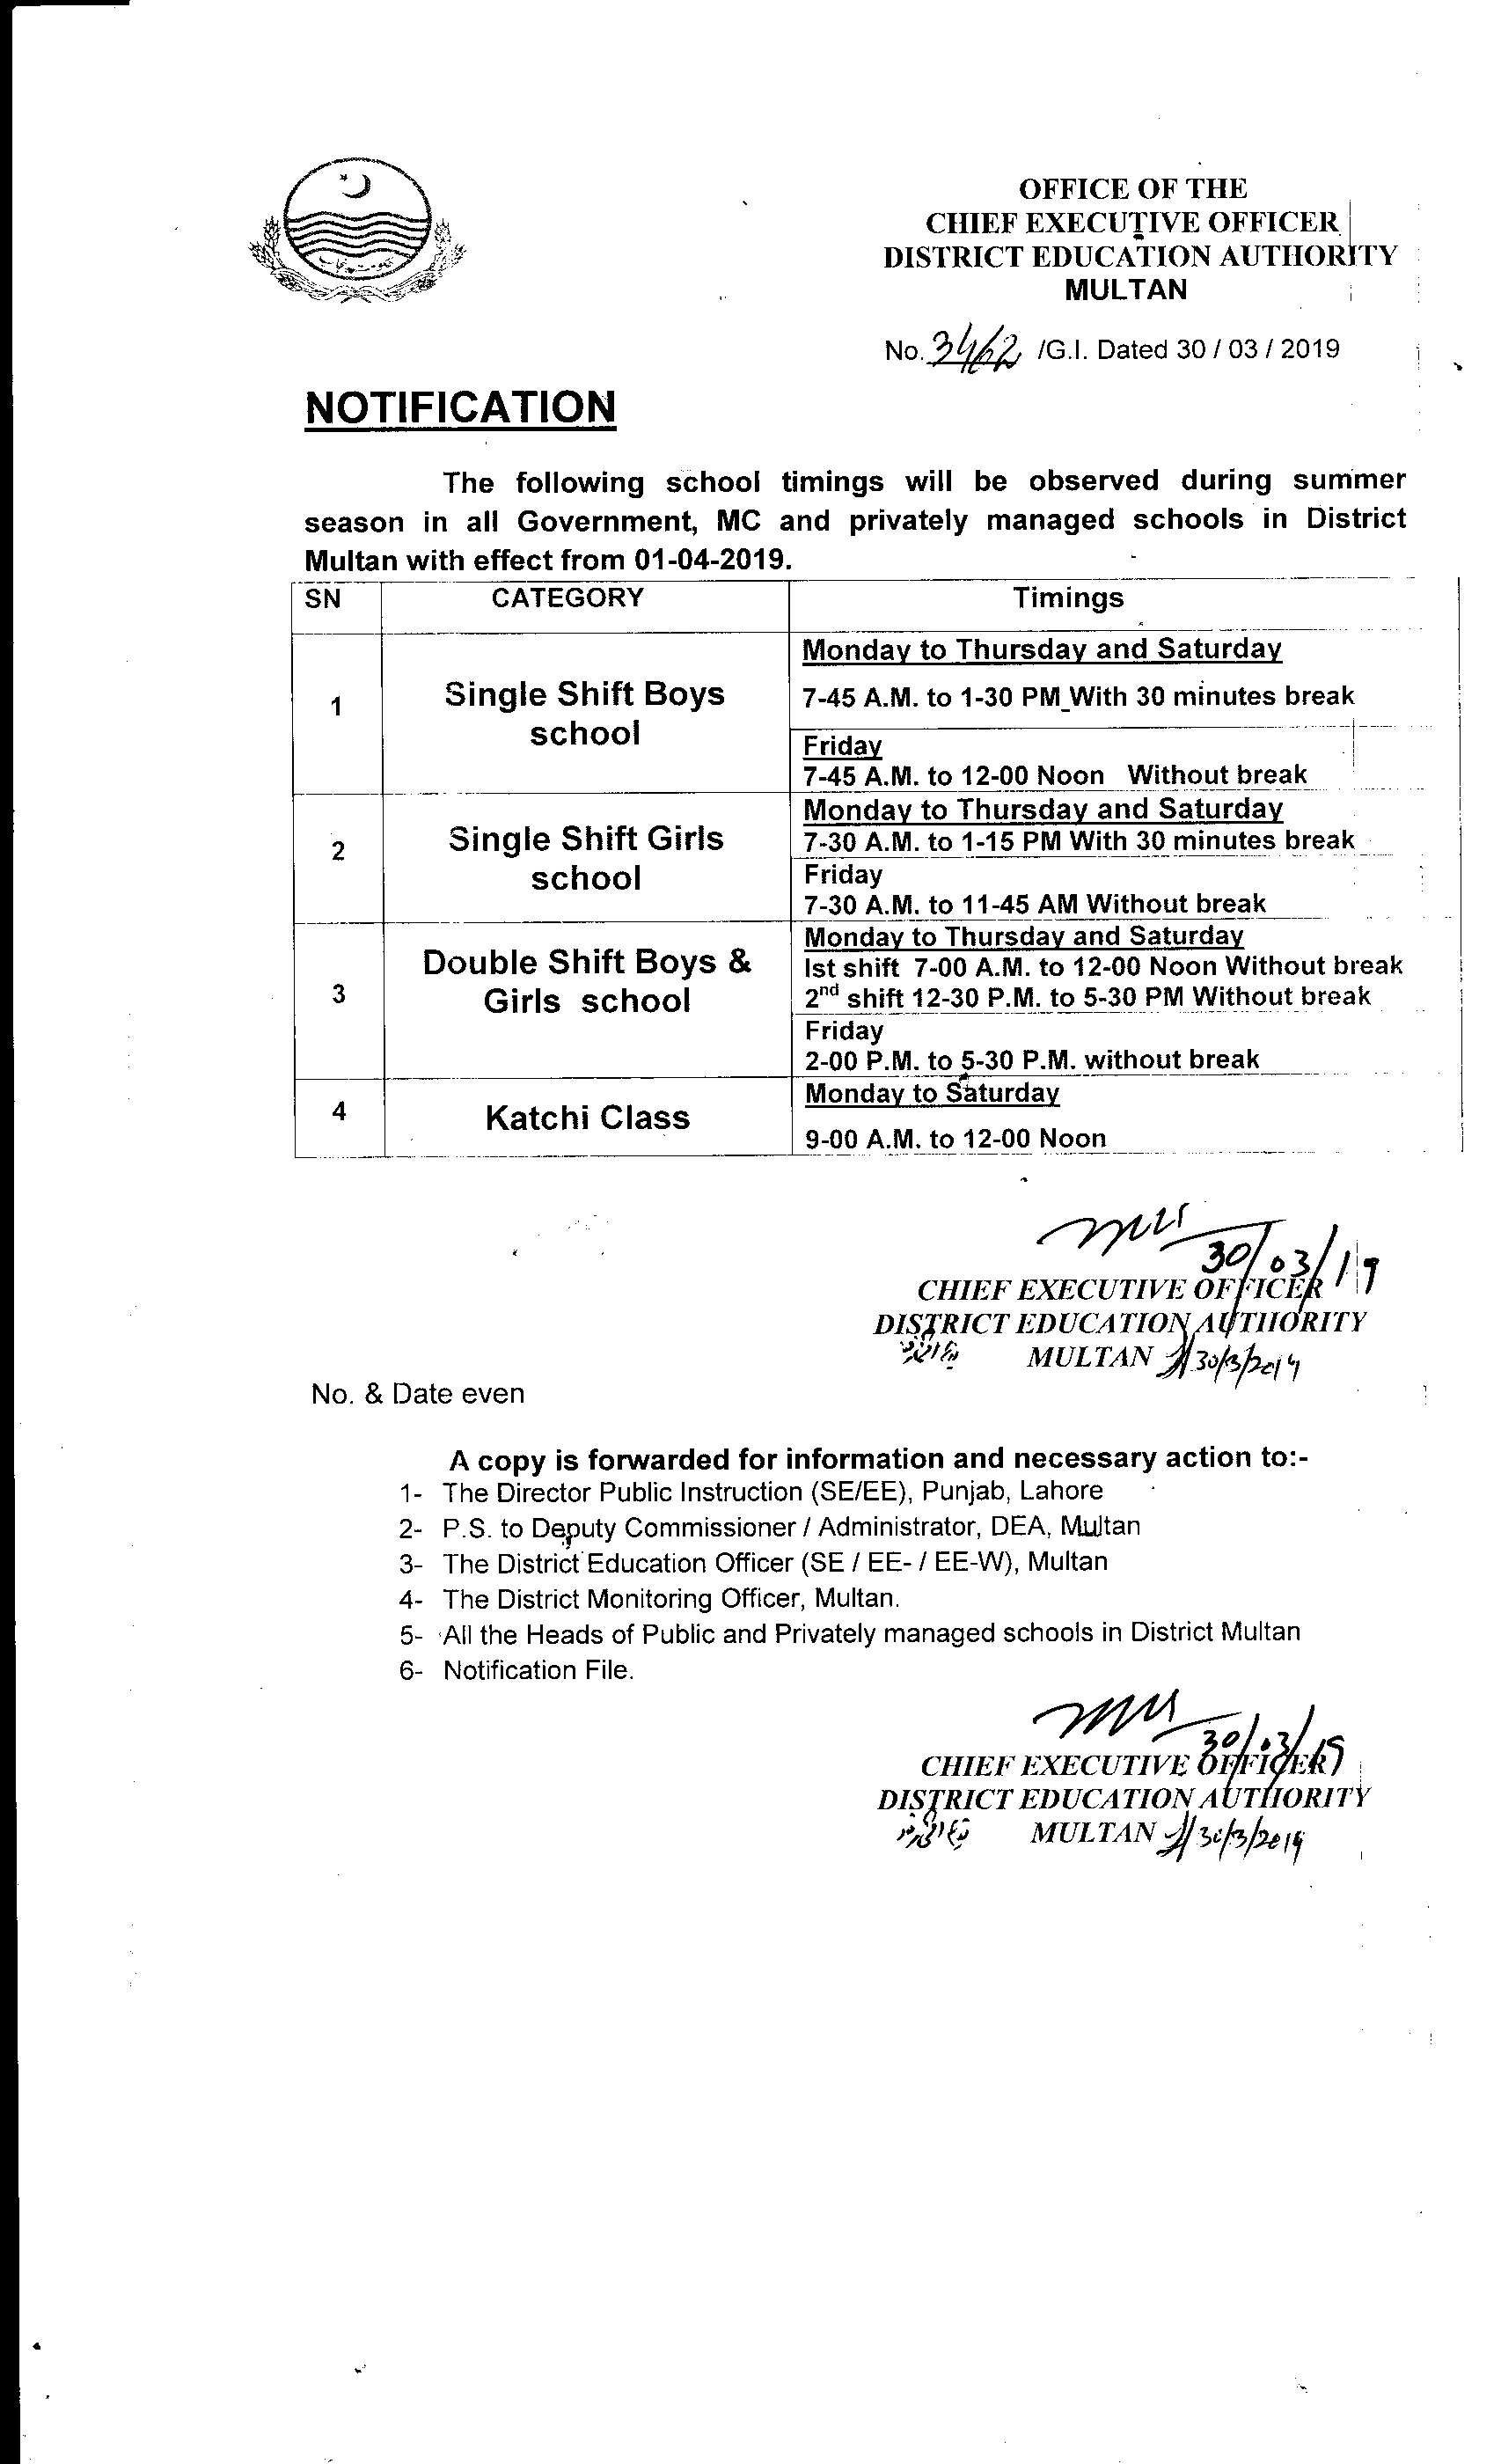 Notification of School Timings in Summer Season